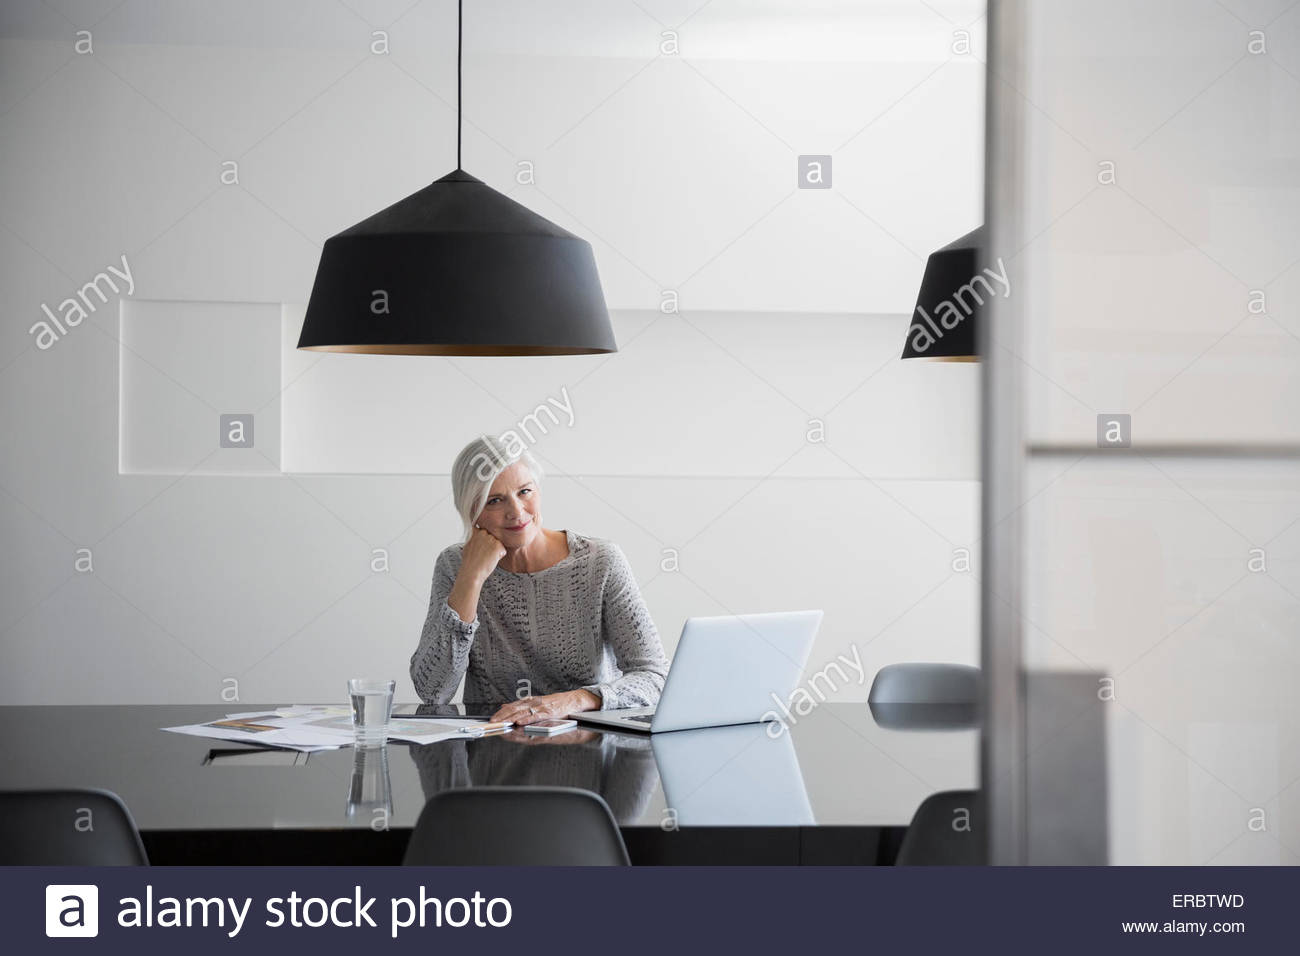 Portrait designer with plans at laptop conference room - Stock Image